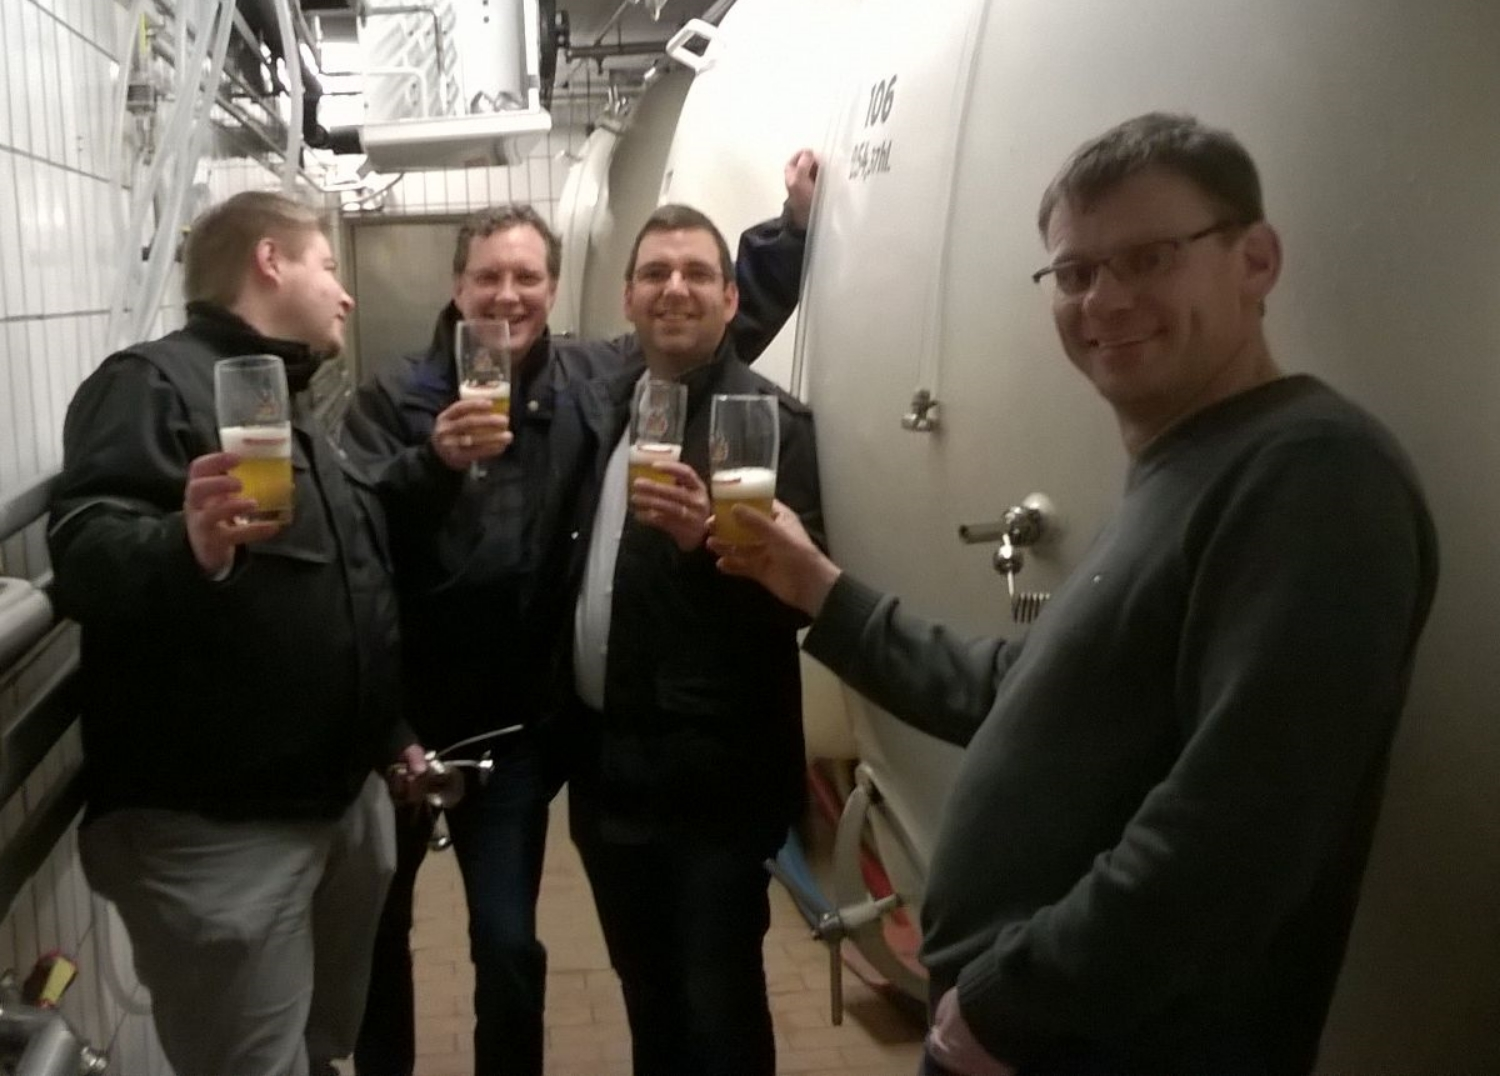 Matthias, Master Maltster and Mike on collaboration assignment with Stefan Hertz and Benjamin Kloos, Master Brewers, Kitzmann Brewery - Prost!